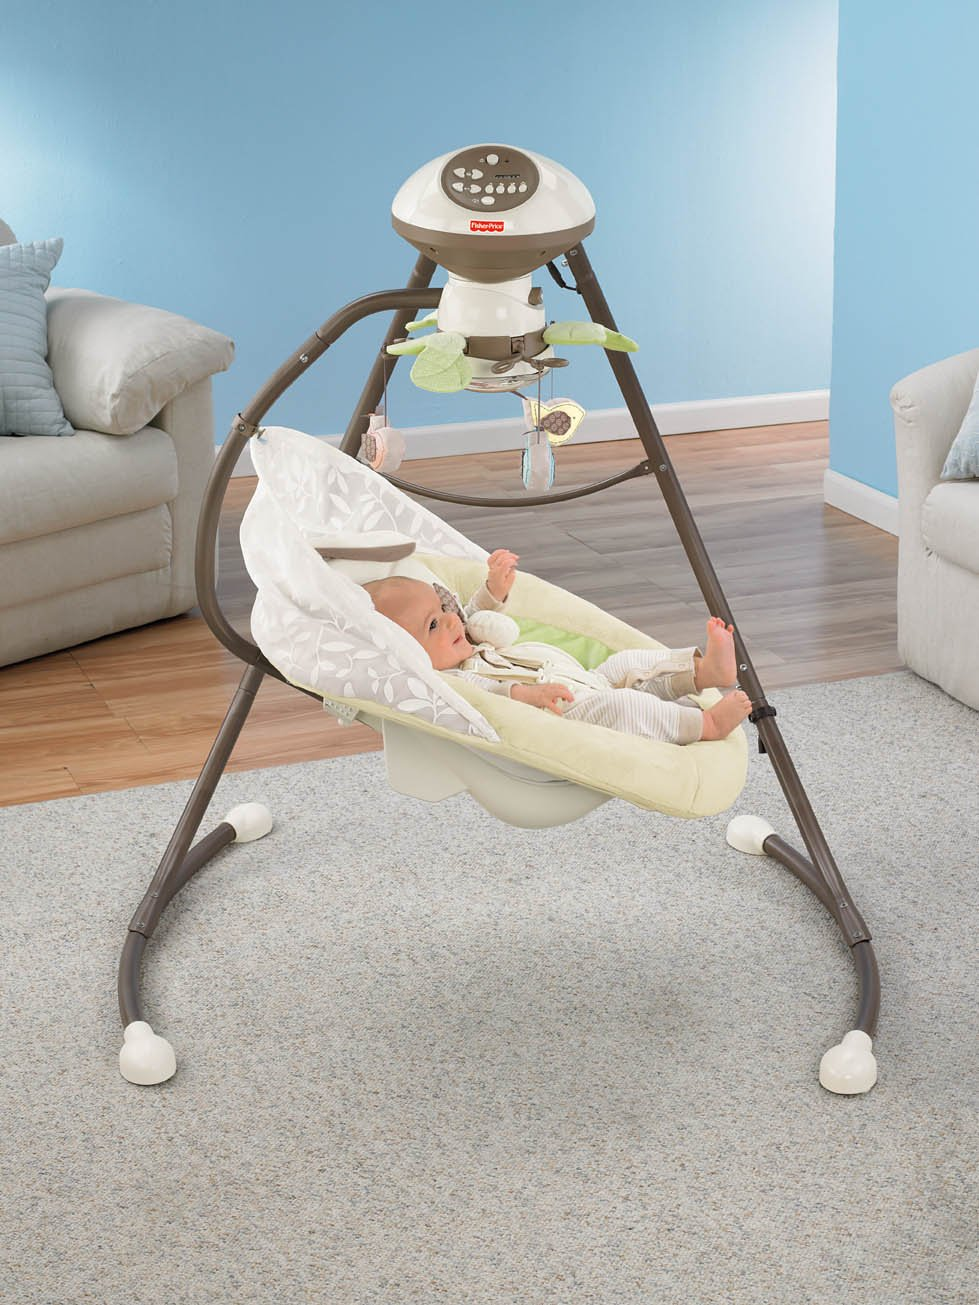 Fisher-Price Snugabunny Cradle 'n Swing with Smart Swing Technology by Fisher-Price (Image #7)